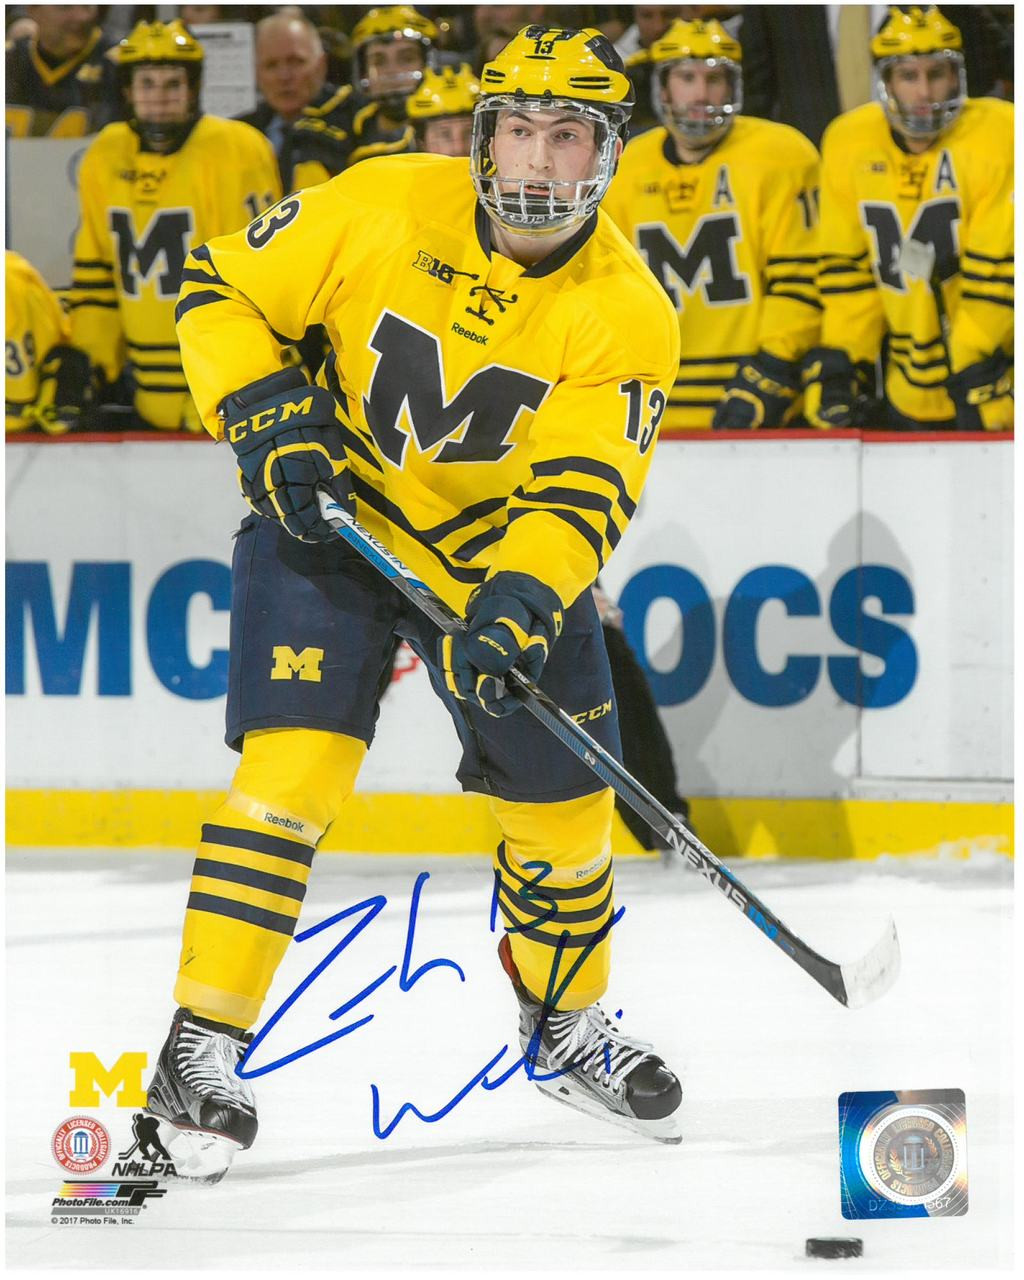 sneakers for cheap b962f af9ee Zach Werenski Autographed 8x10 Photo #2 - University of Michigan